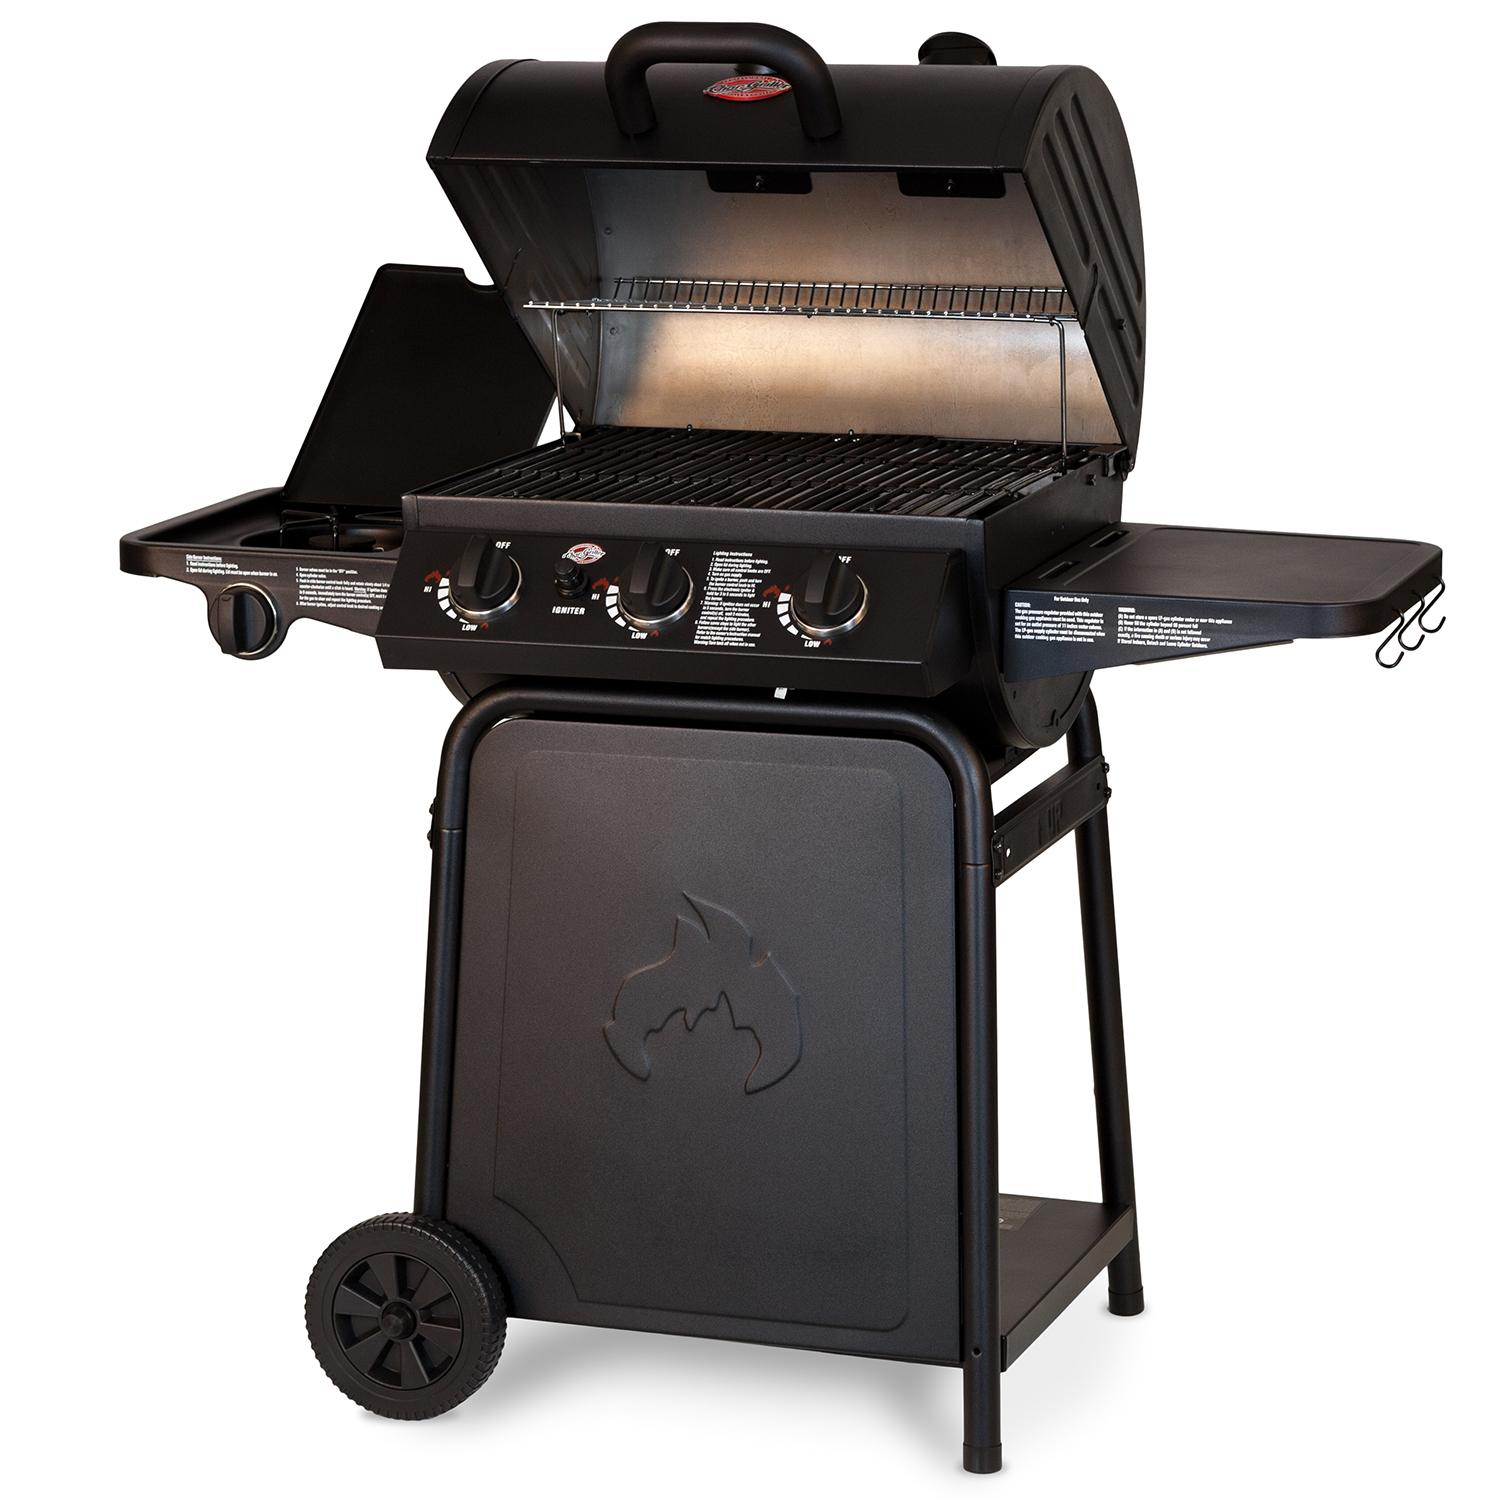 char griller 3001 grillin 39 pro 40 800 btu gas grill garden outdoor. Black Bedroom Furniture Sets. Home Design Ideas